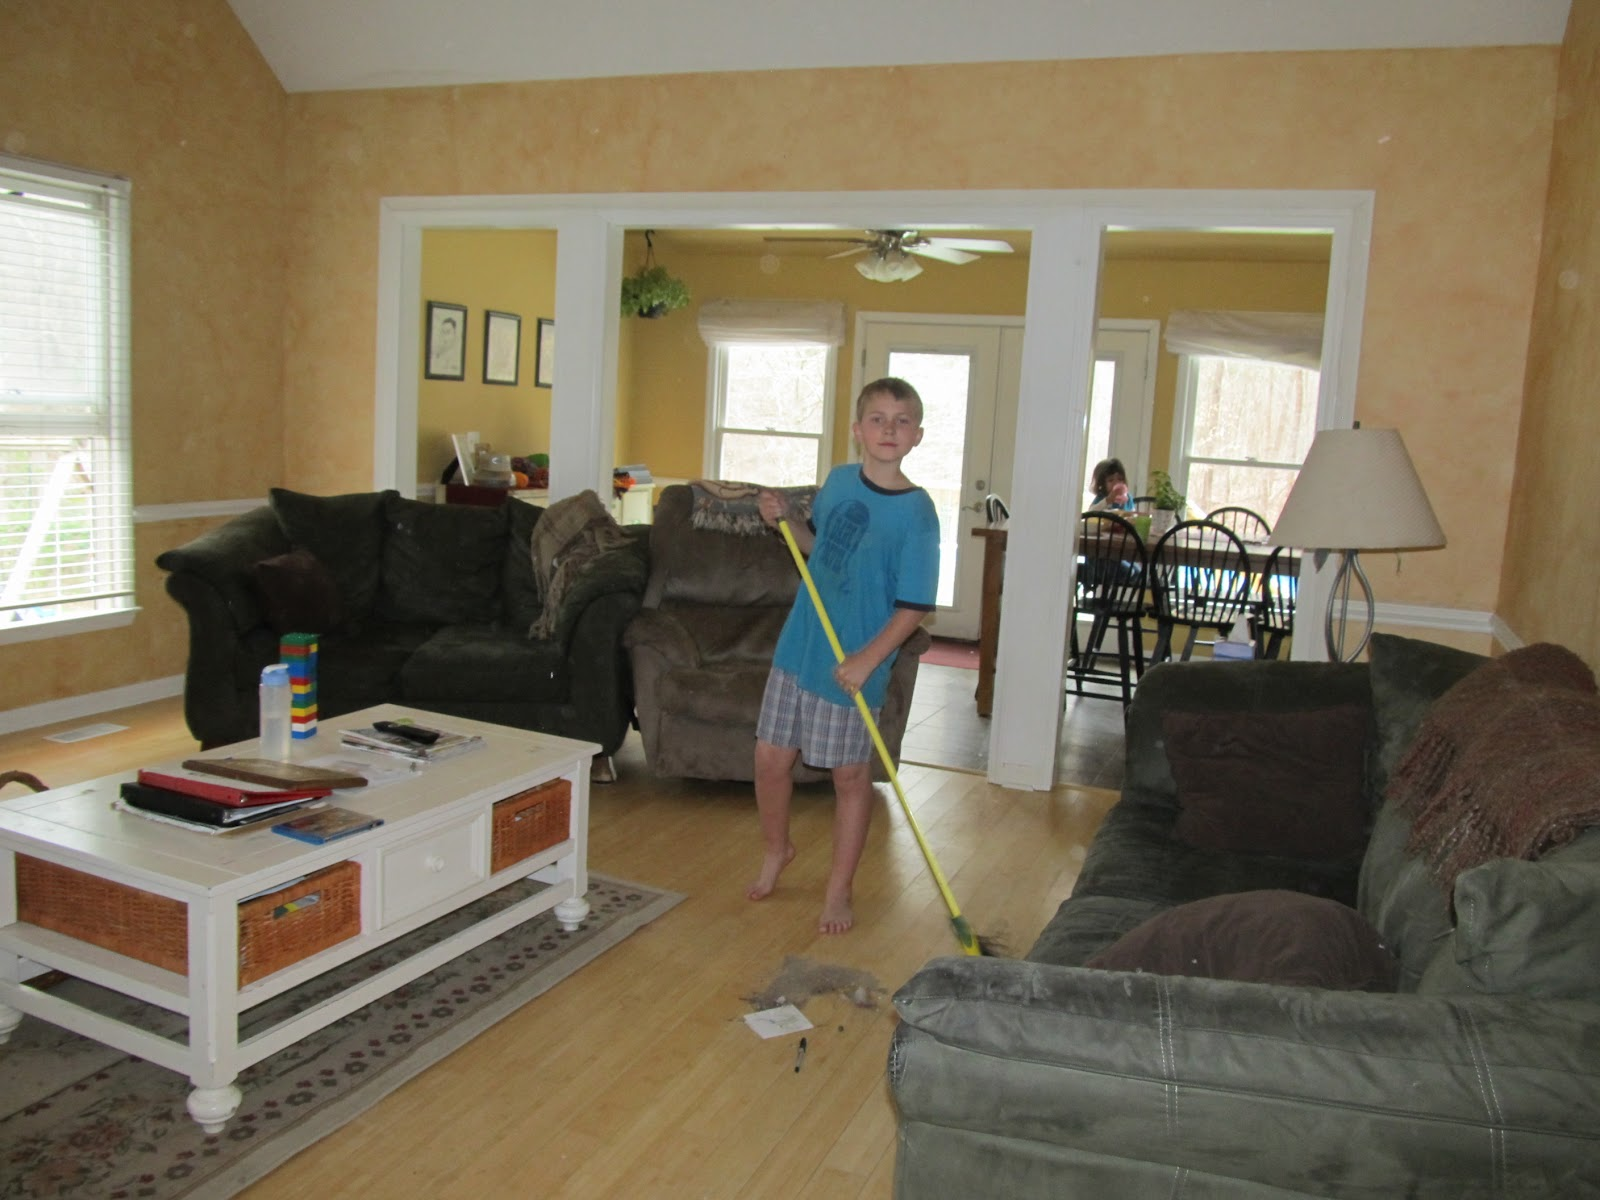 alex helping to sweep the living room deal was the title=